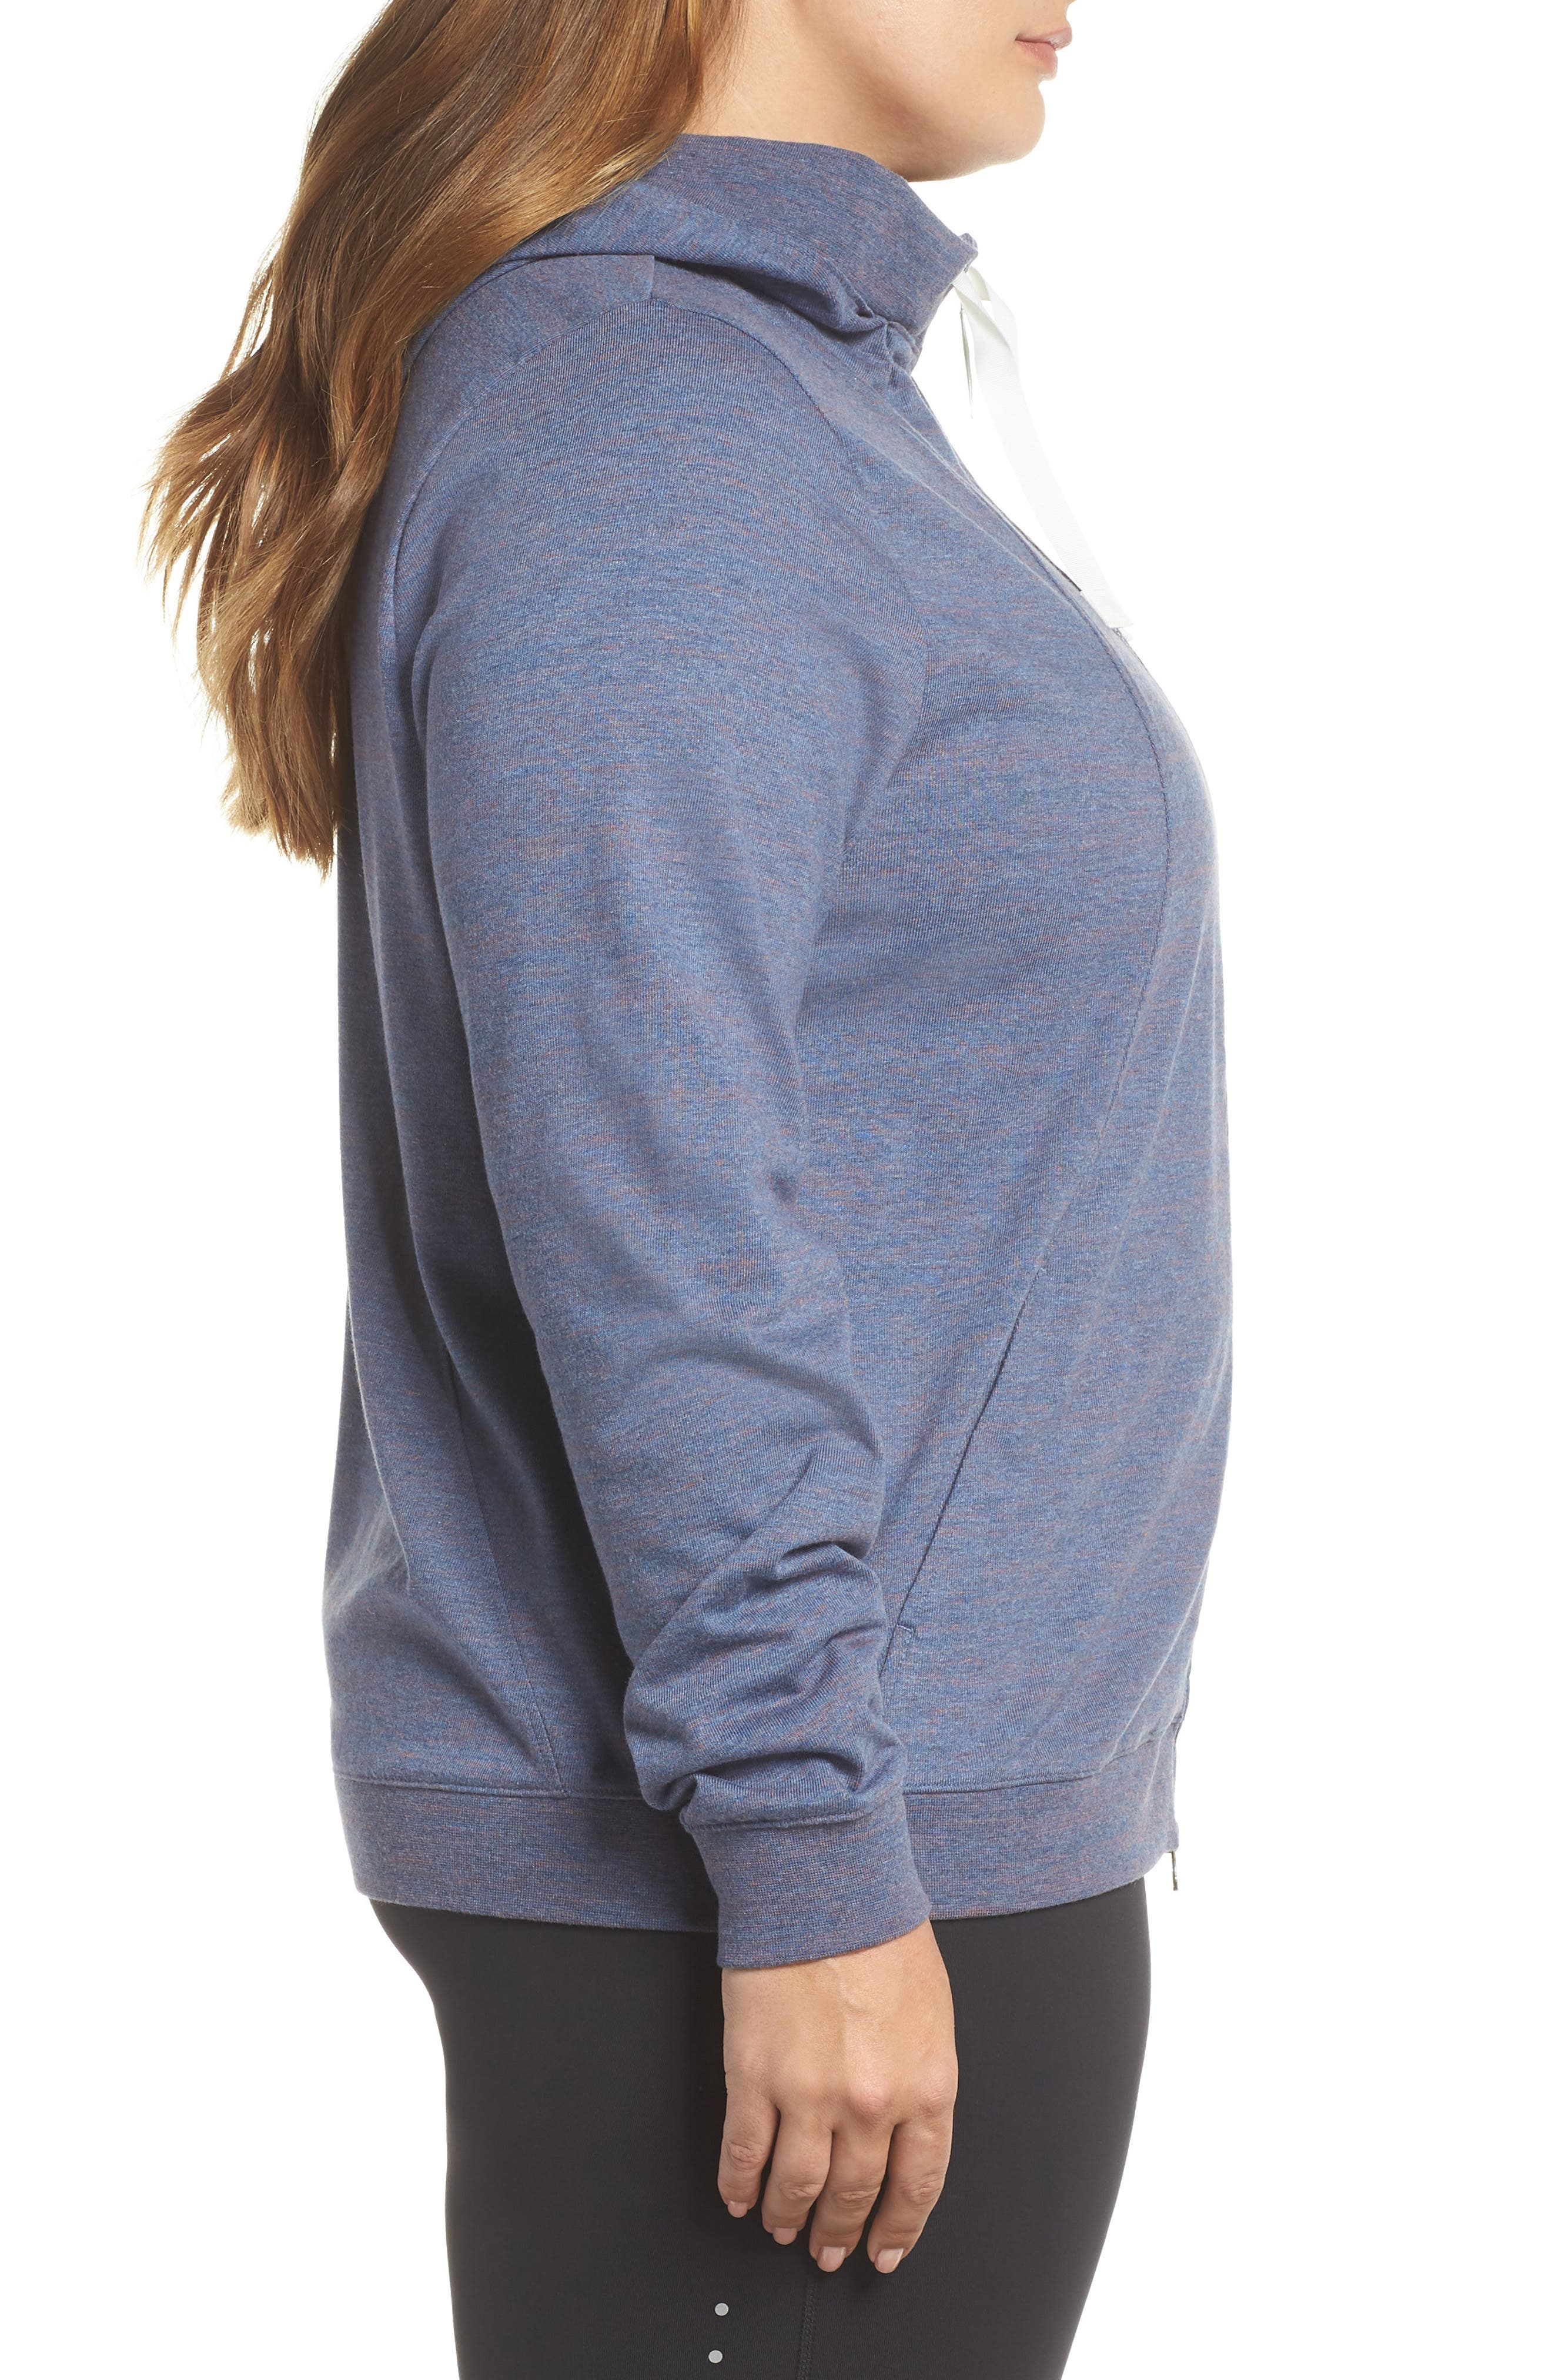 Gym Zip Hoodie,                             Alternate thumbnail 3, color,                             Diffused Blue/ Heather/ Sail